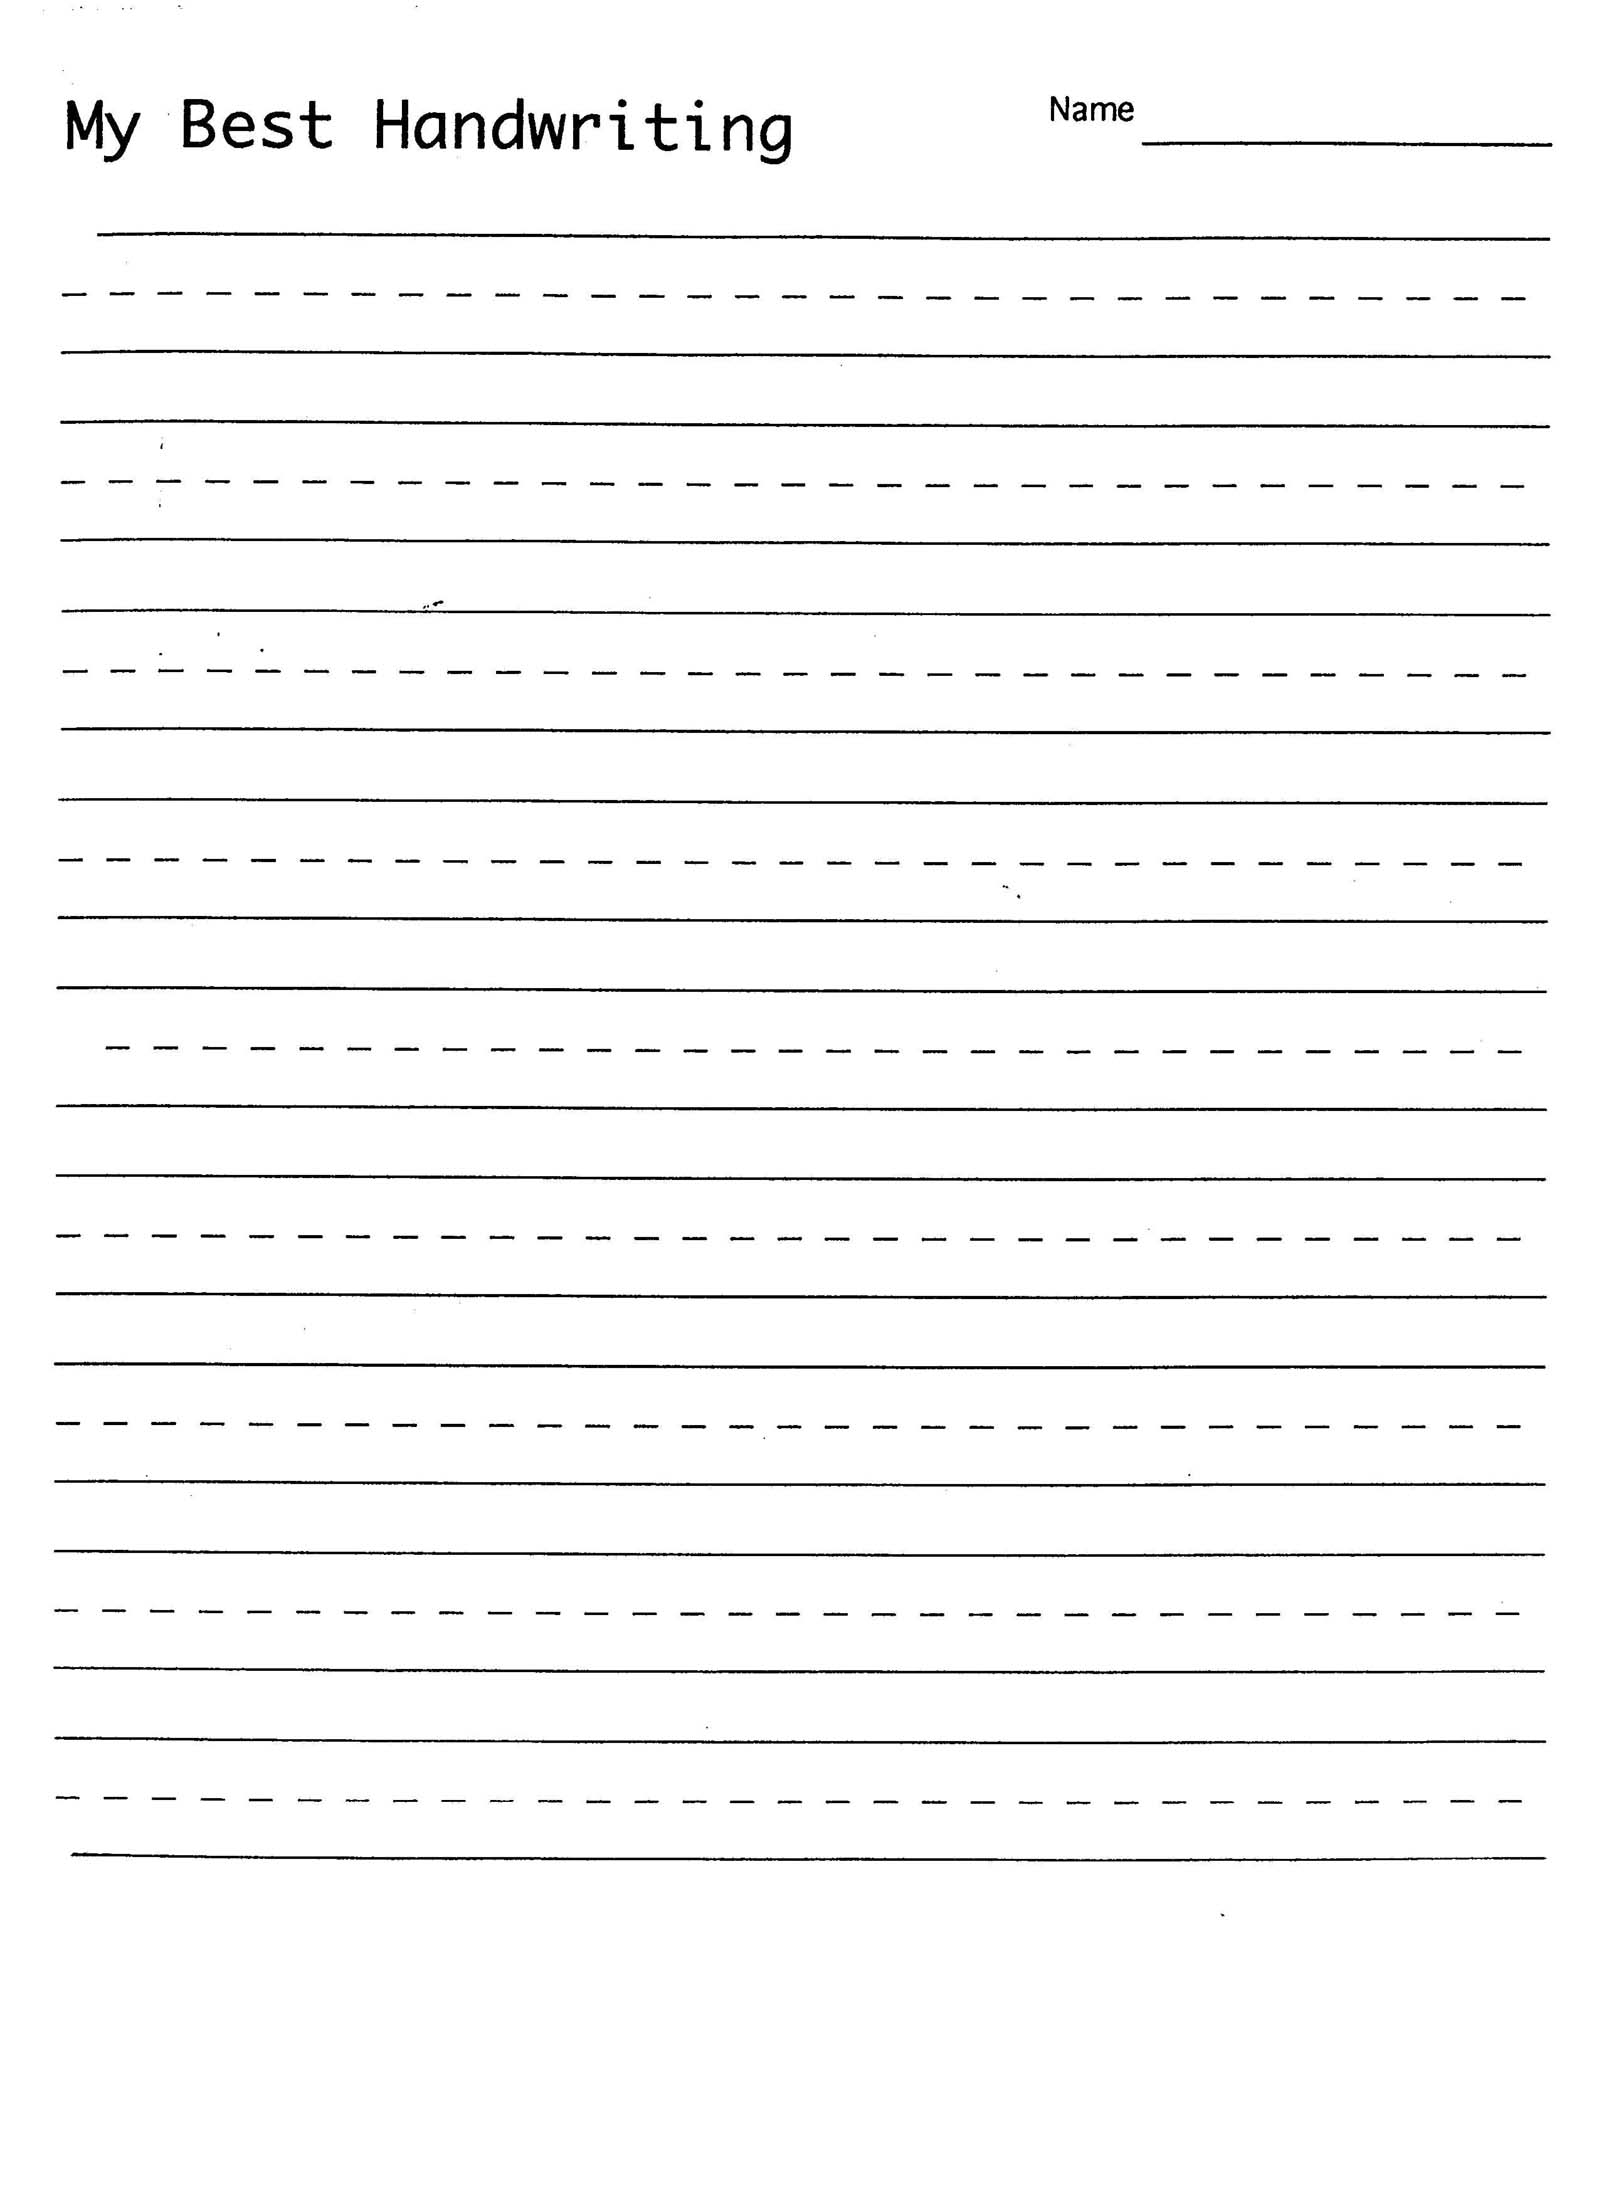 Worksheet Handwriting Worksheets Free worksheet free handwriting practice wosenly printable laptuoso laptuoso